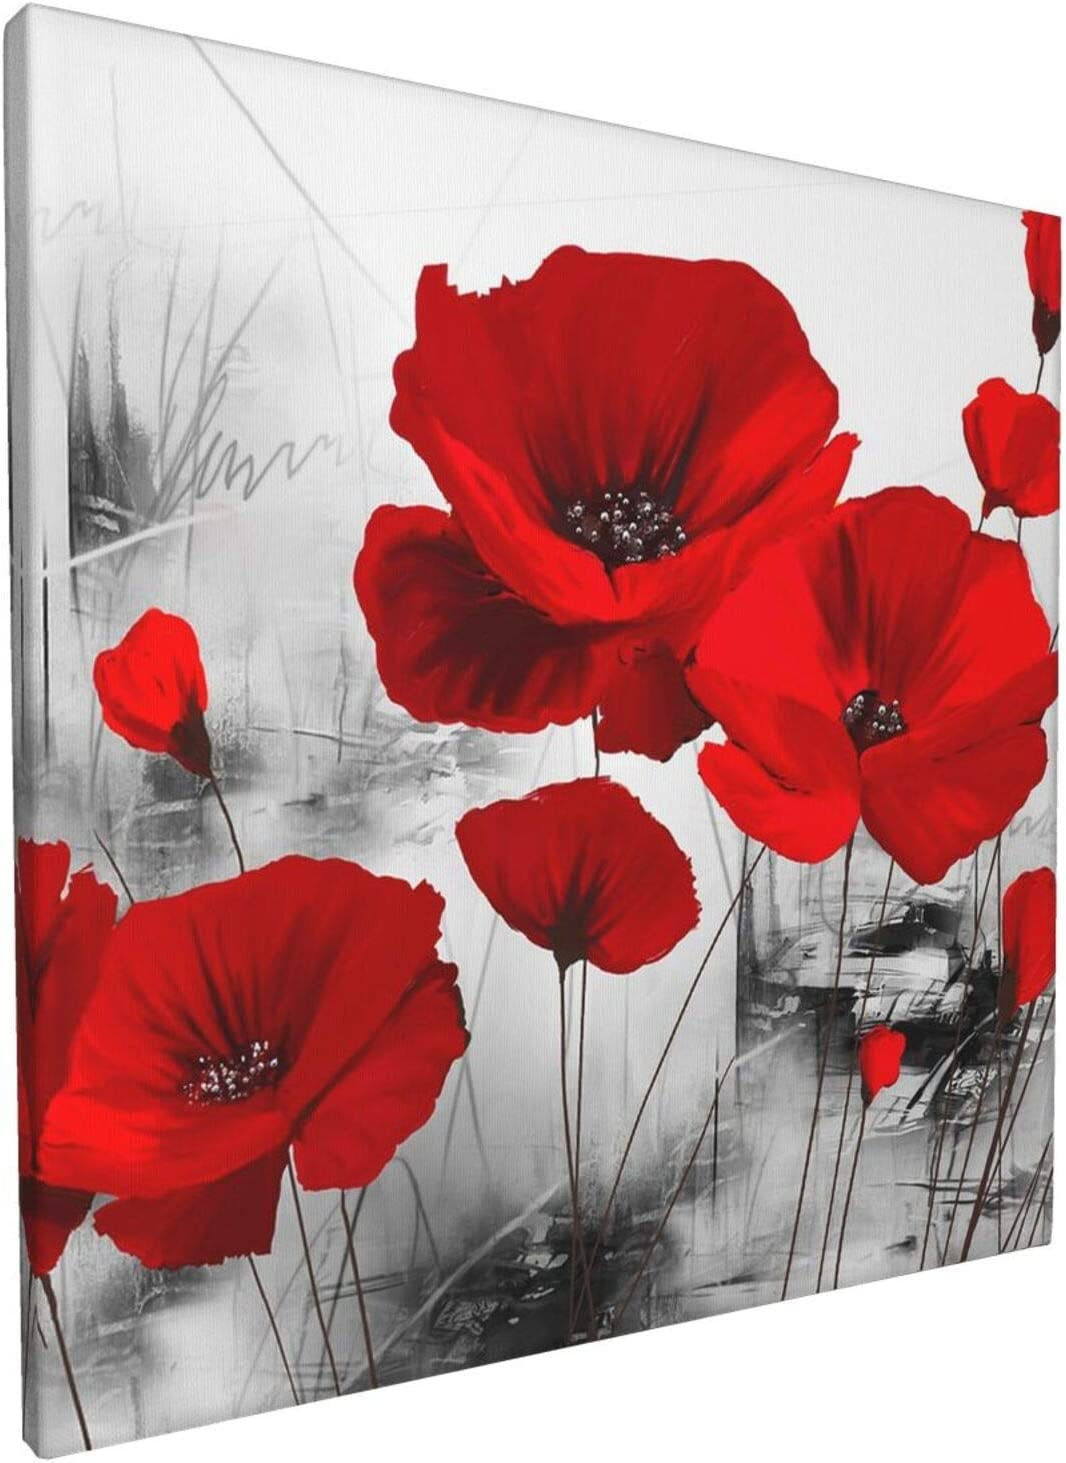 Kingsleyton Poppy Wall Art Elegant Red Flower Plant decor Abstract Poppies Canvas Painting Picture for Living Room bathroom Wood Frame Easy to Hang 12x12 inchs